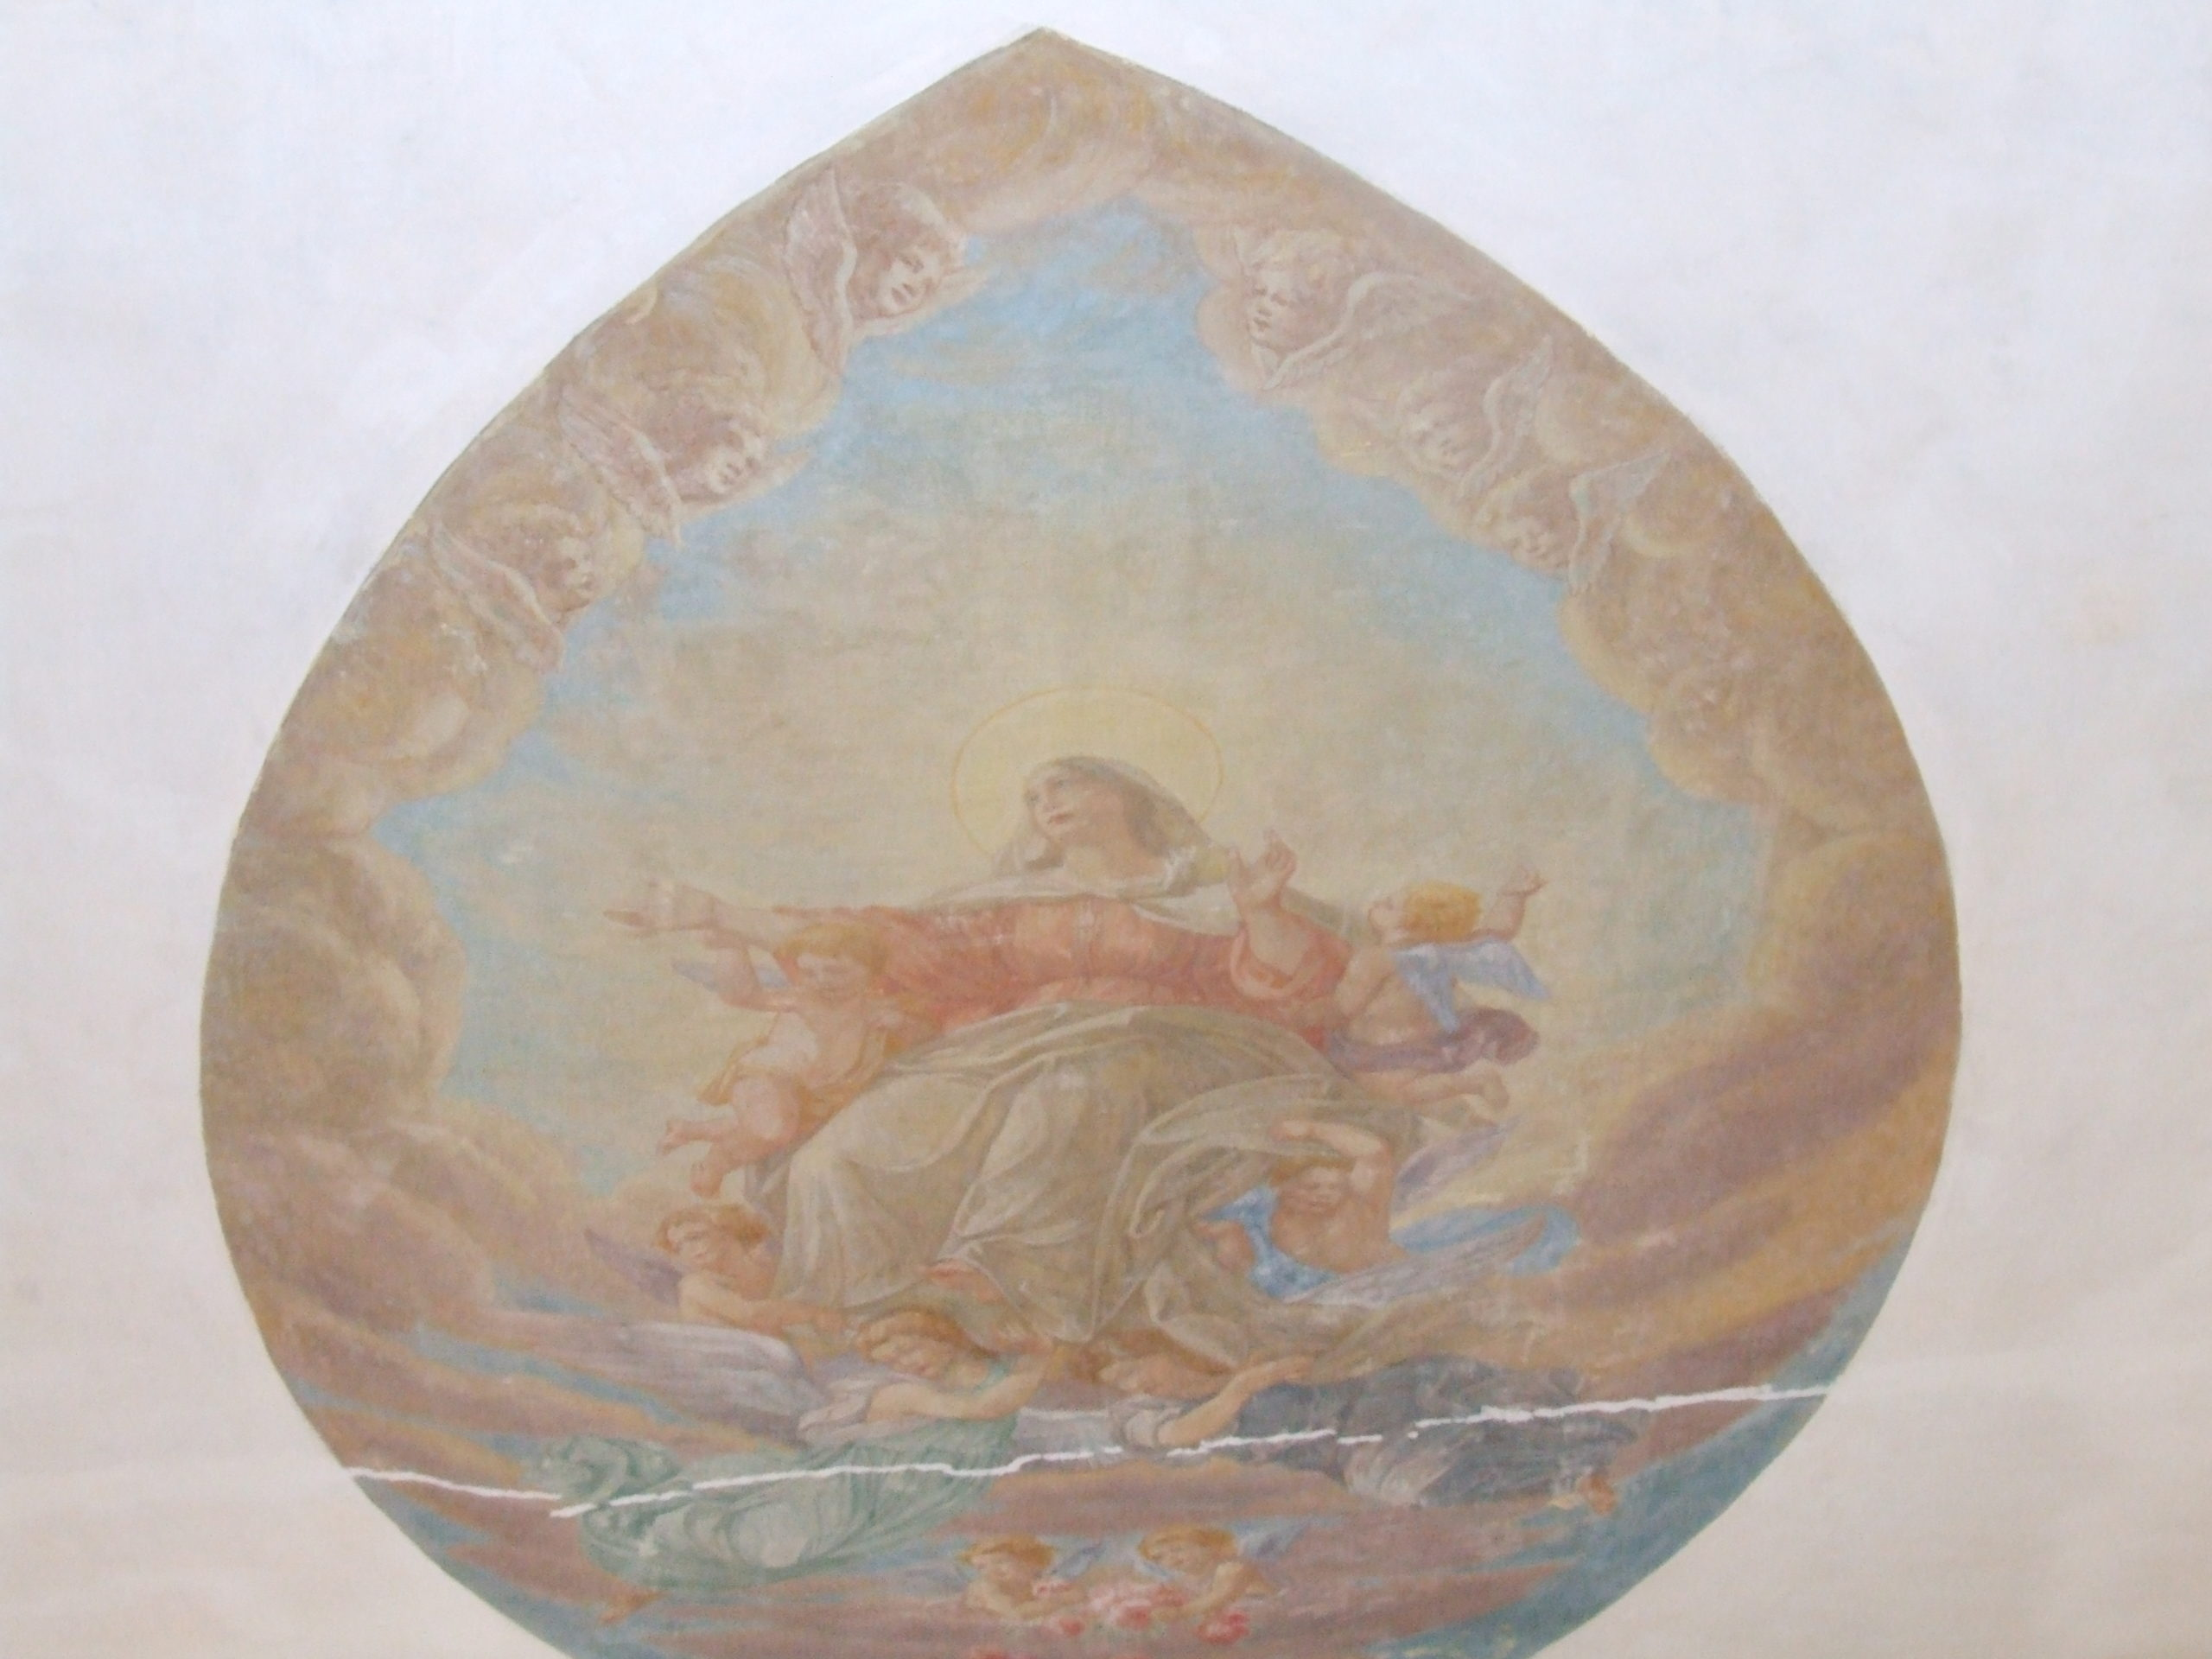 Denys Savchenko. Religious painting. Monumental painting. Ceiling painting. Suore Serve di Maria Chapel